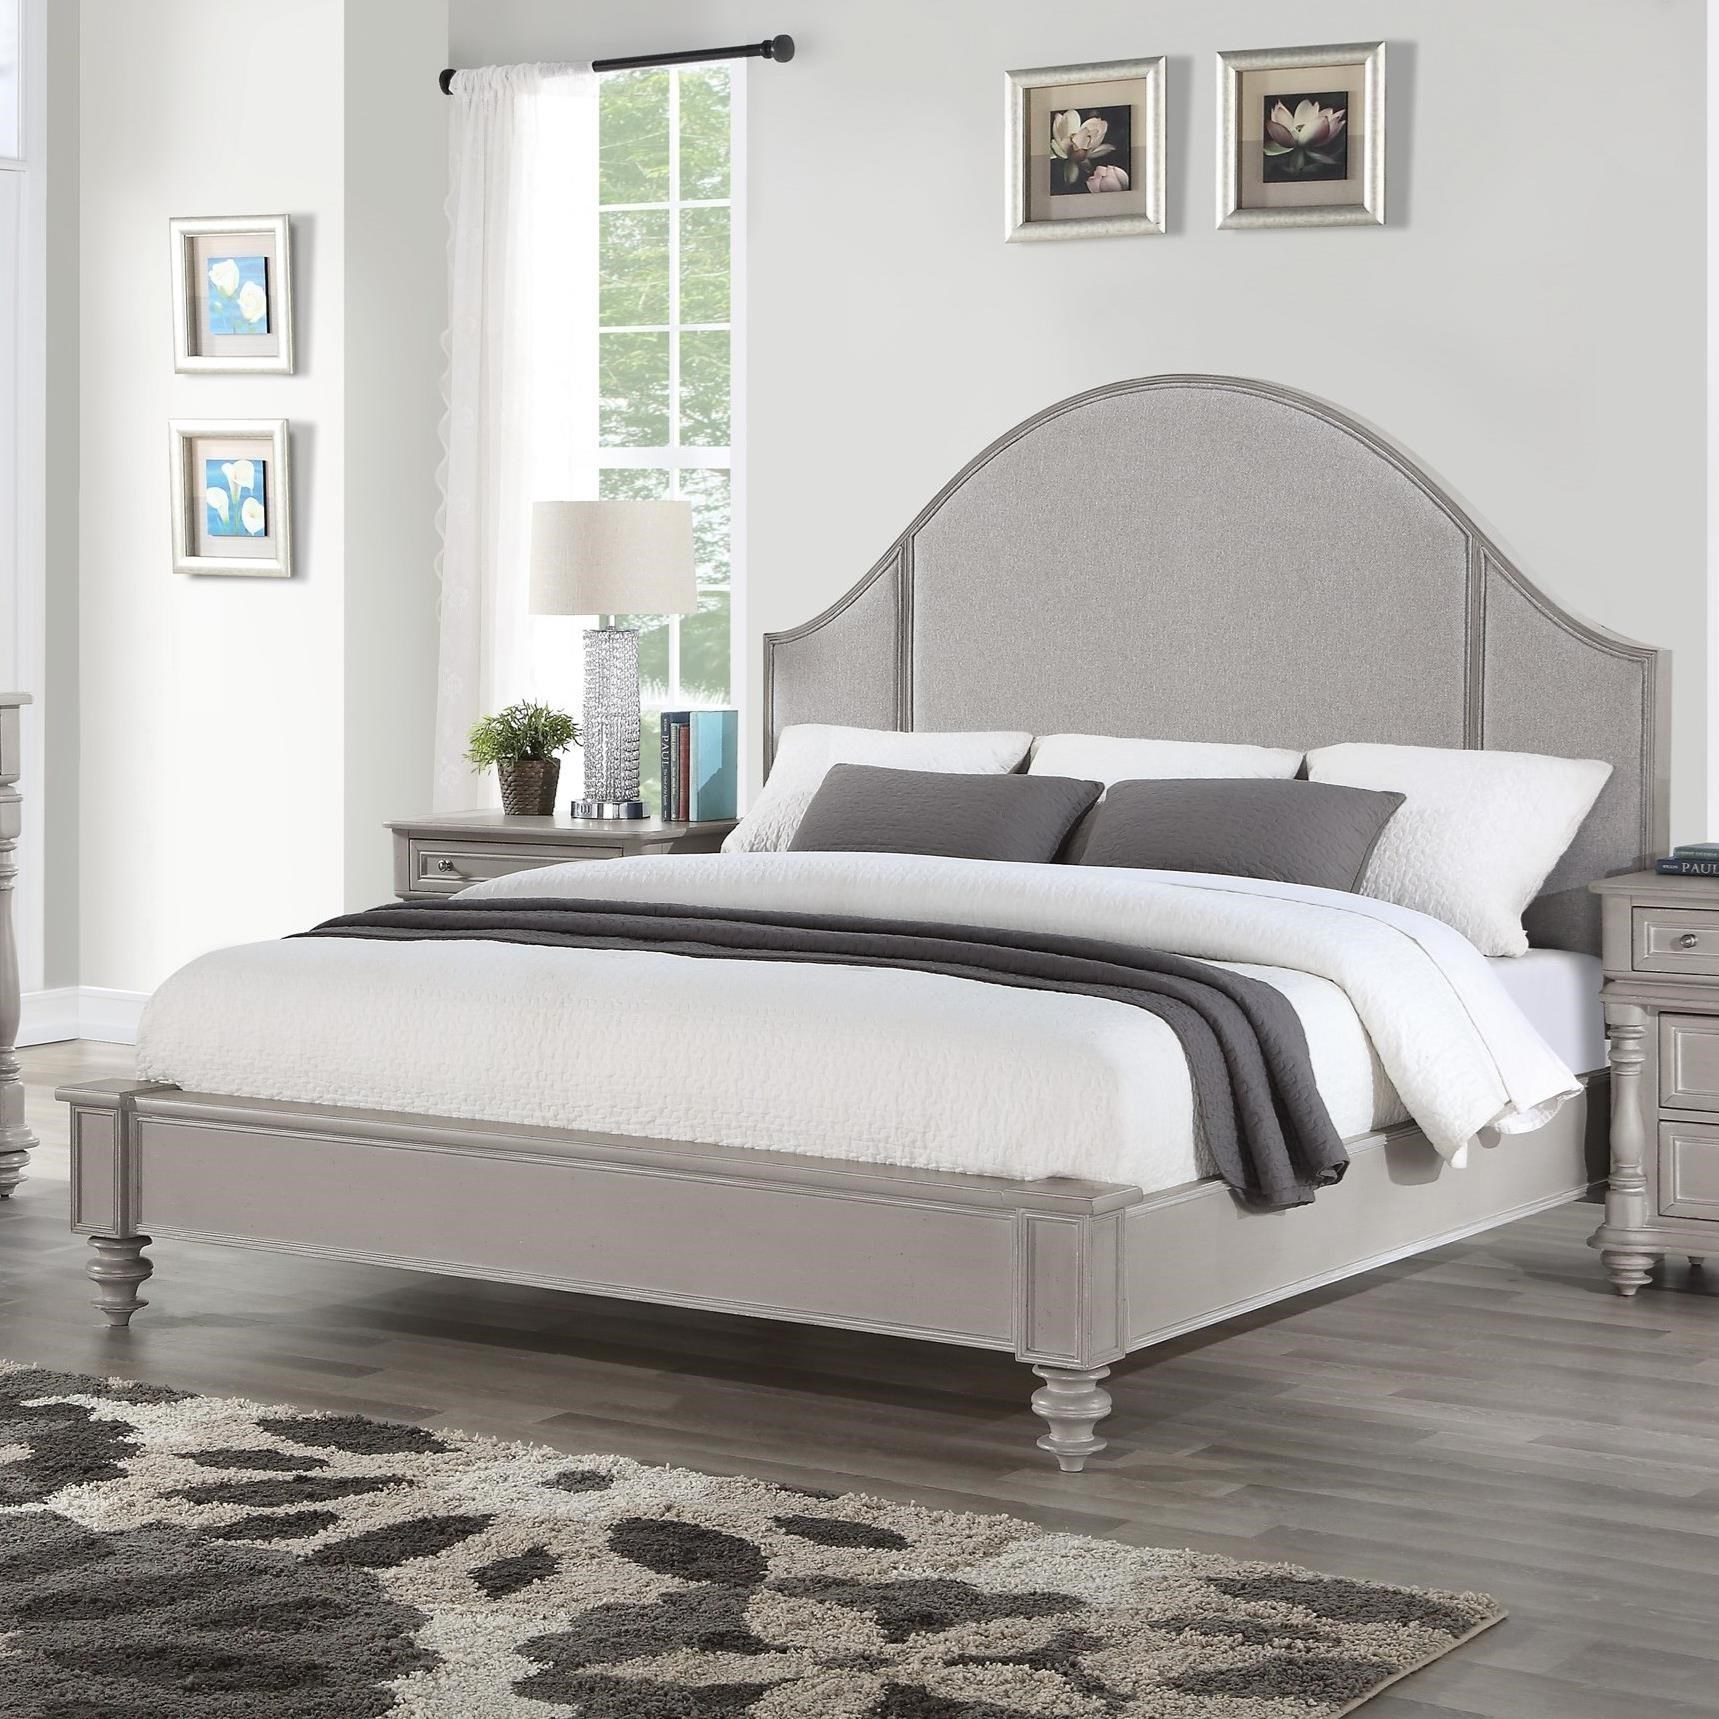 Heirloom Queen Upholstered Bed by Flexsteel Wynwood Collection at Northeast Factory Direct